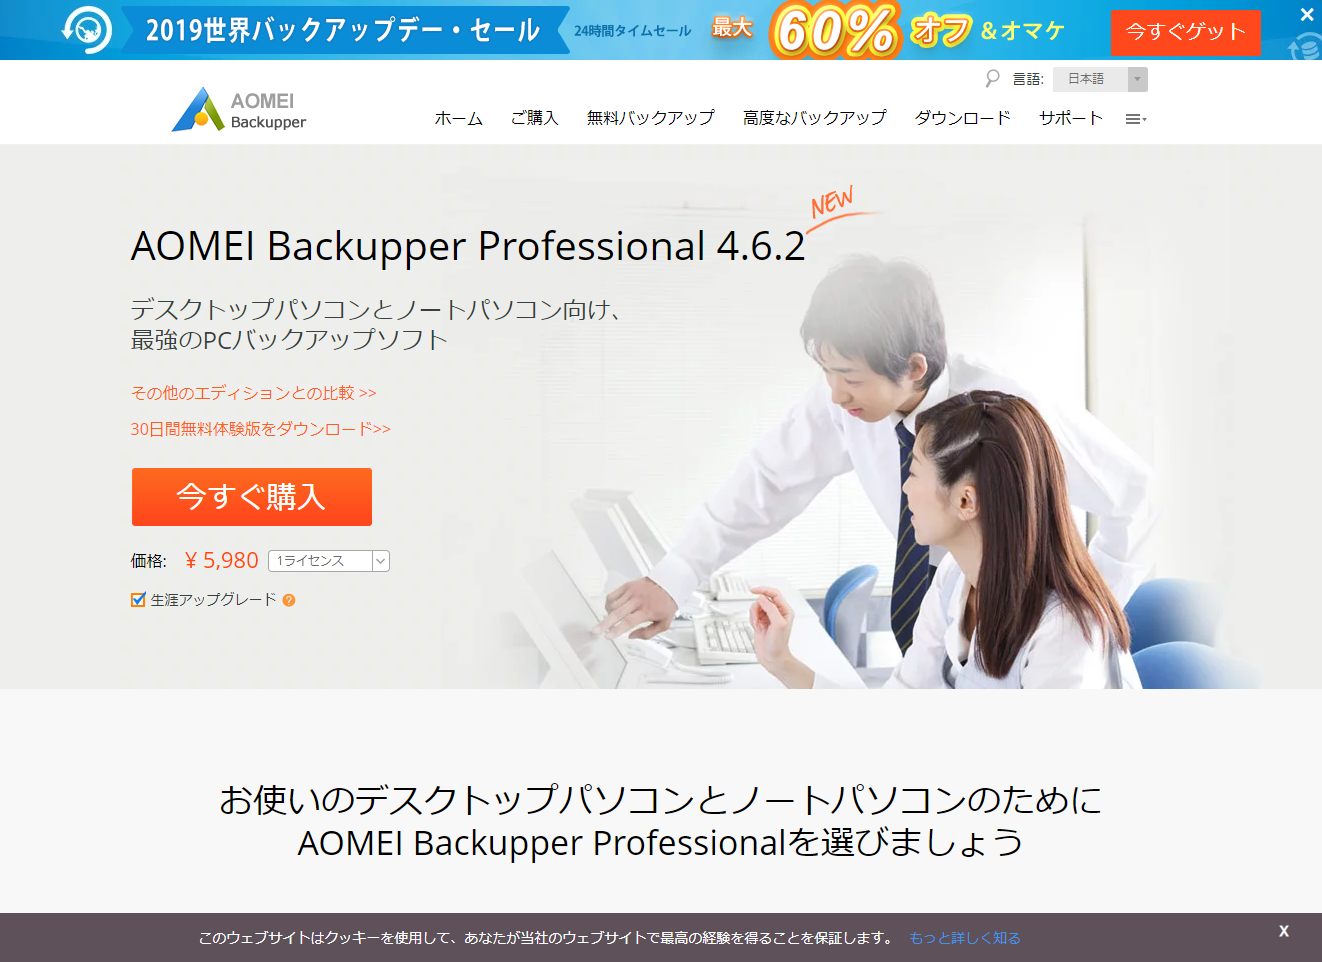 AOMEI Backupper Professional サイト